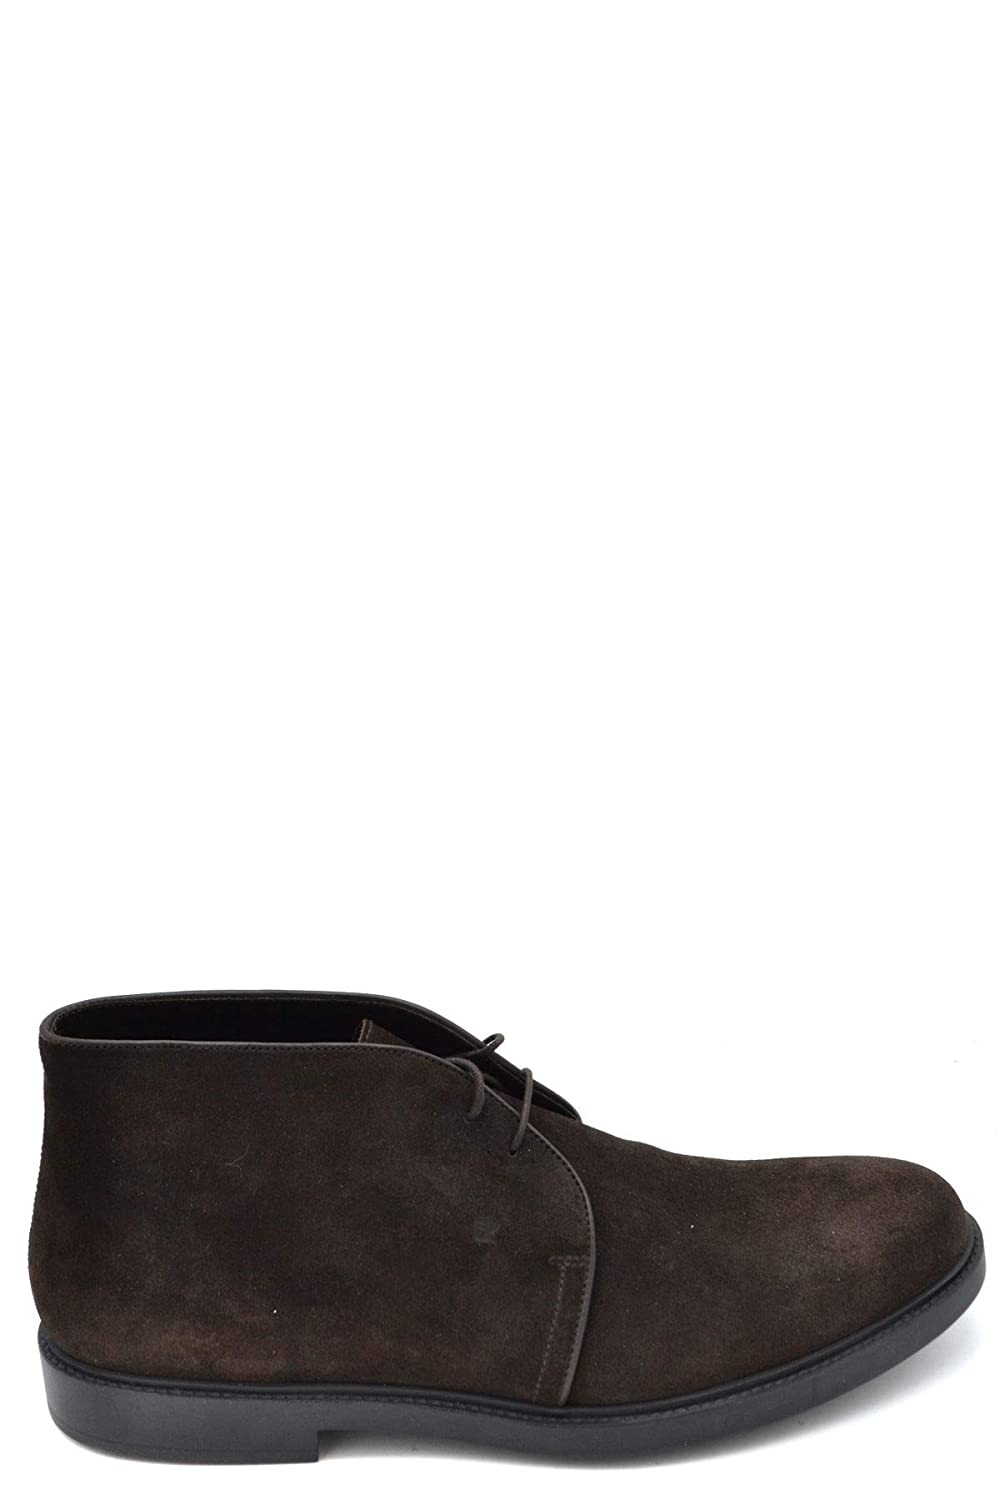 - FRATELLI ROSSETTI Men's MCBI37172 Brown Suede Ankle Boots